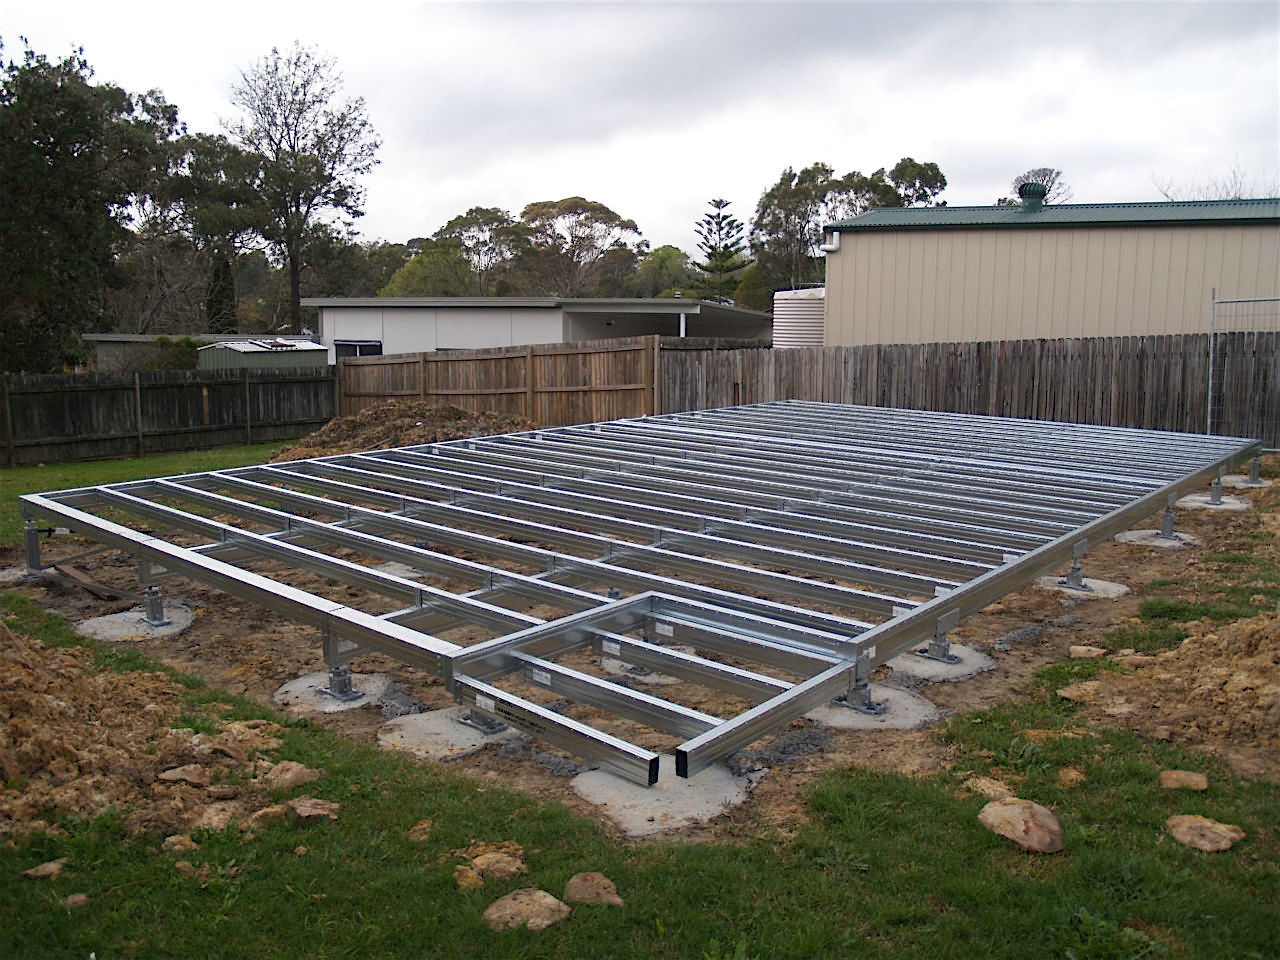 Boxspan steel bearers and joists floor frame for a granny flat in a suburban backyard